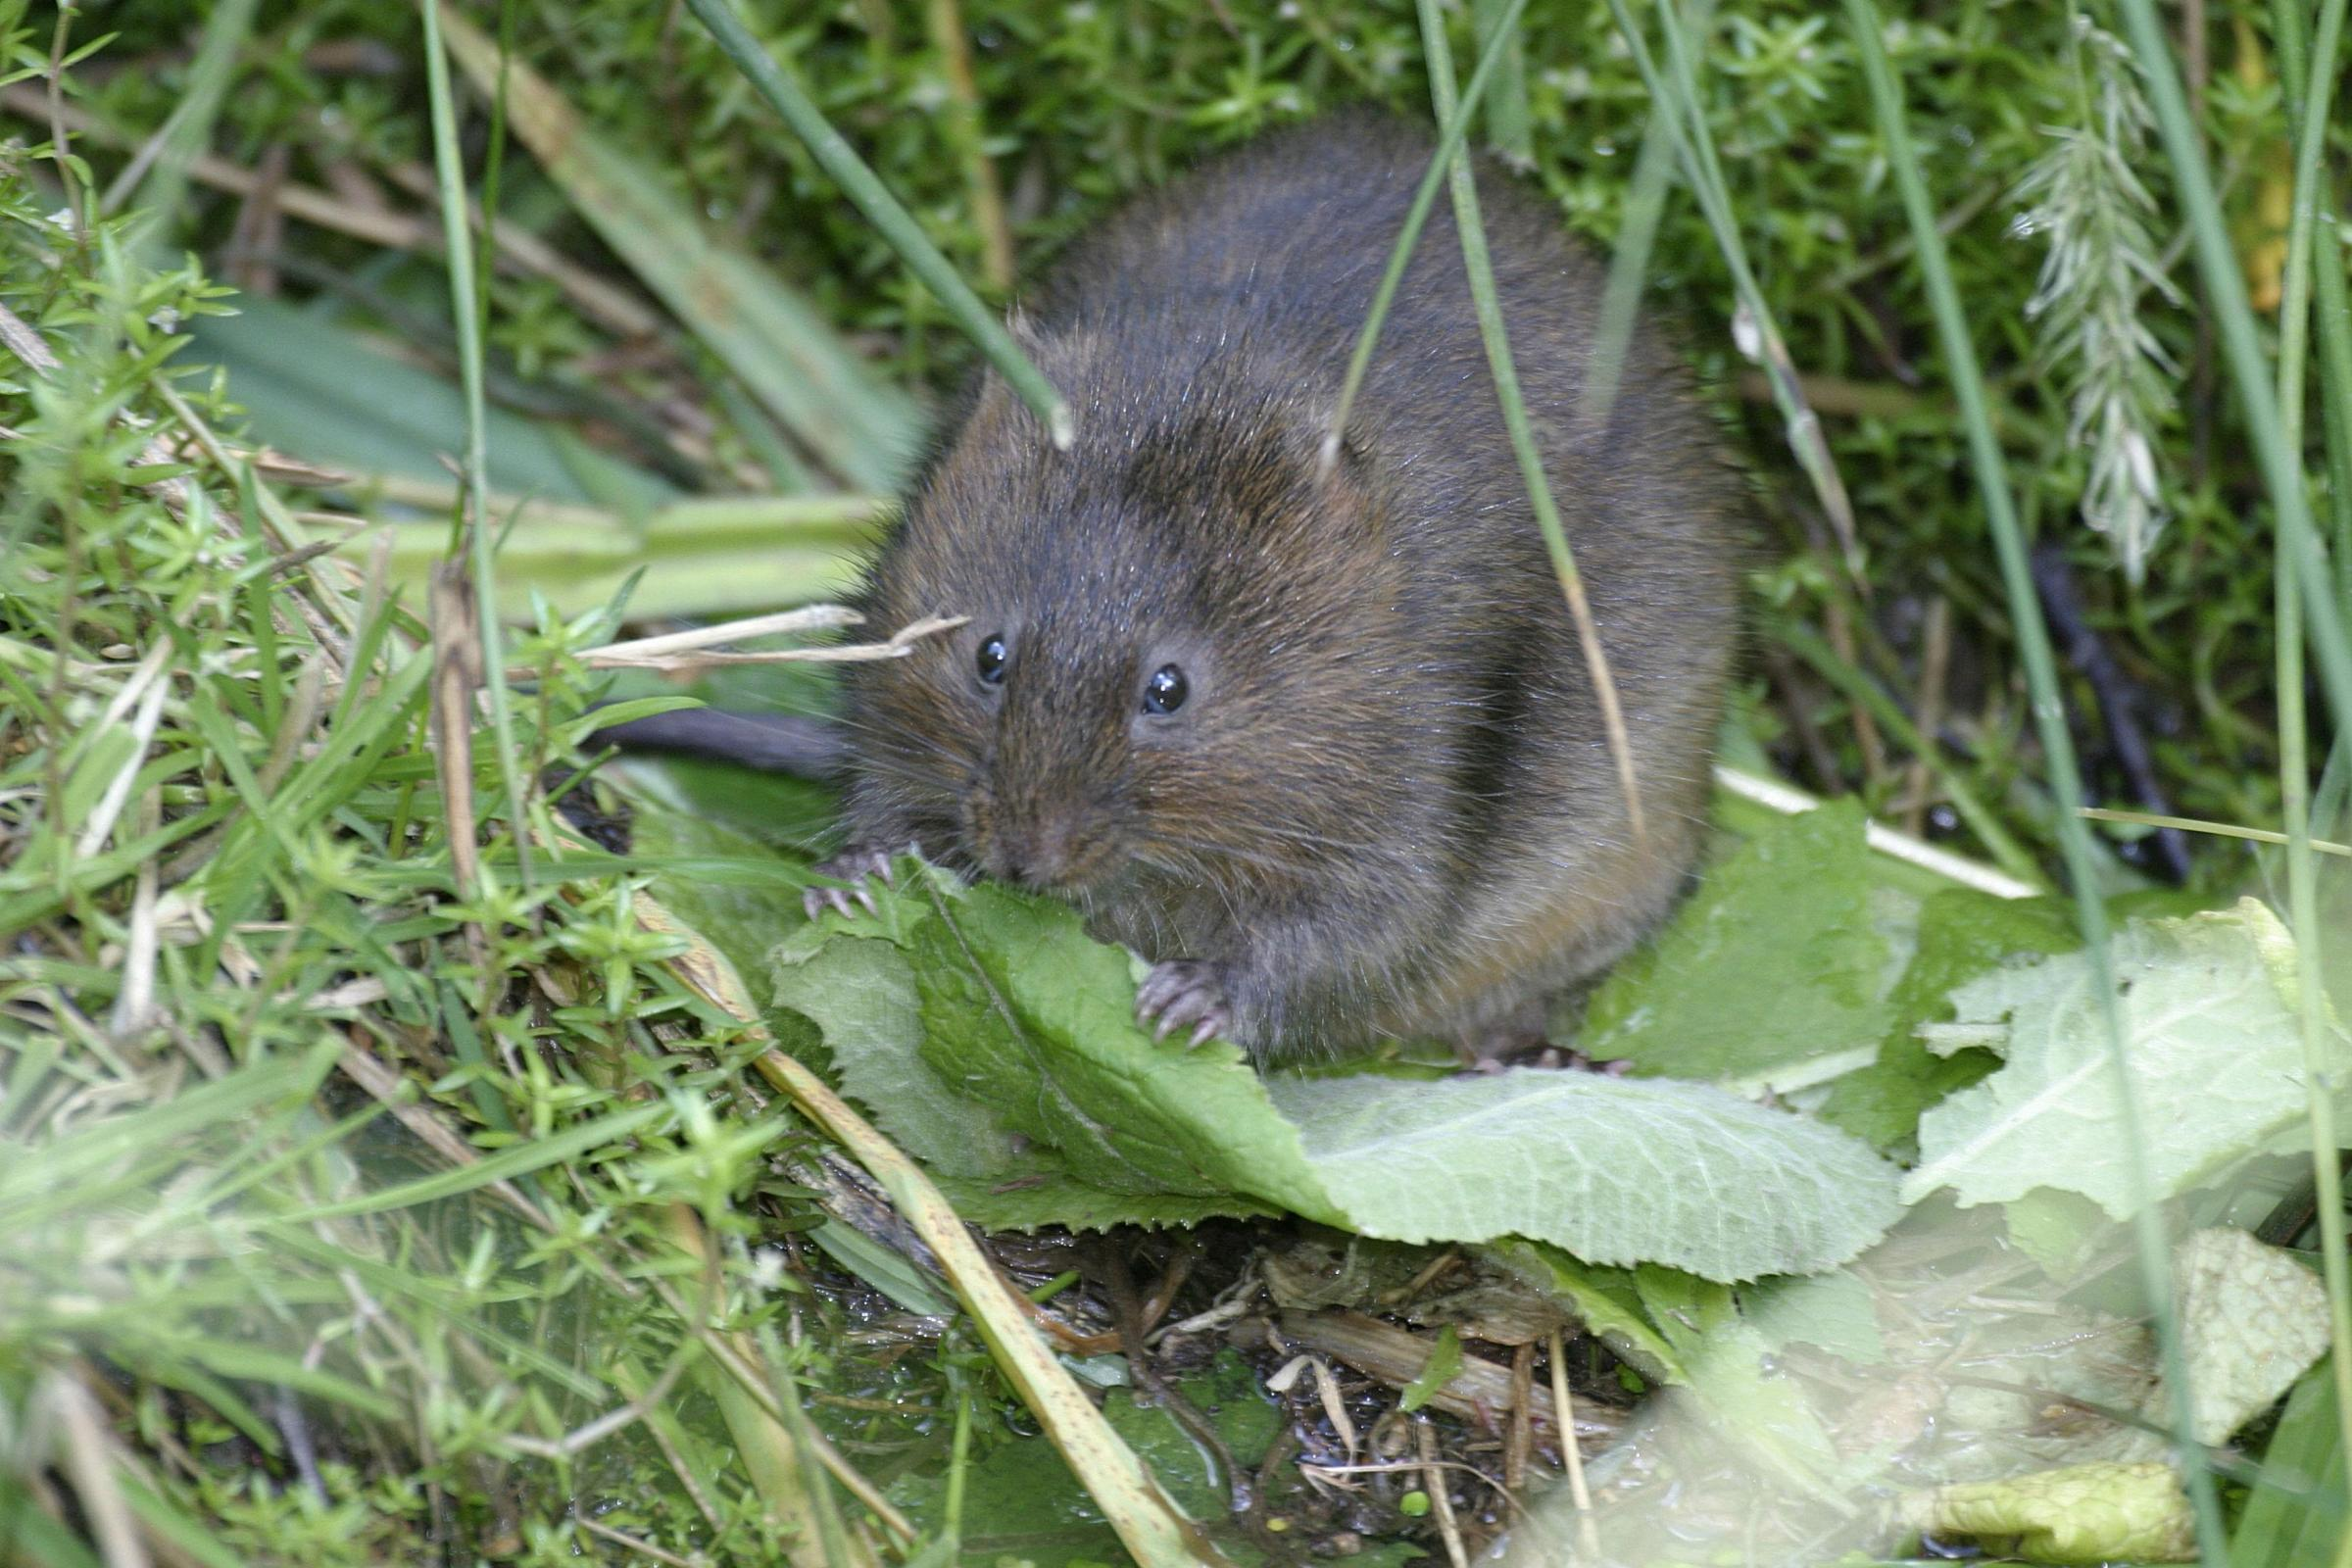 RARE: The water vole is among the rare creatures found in the waterways. Pic: www.wildstock.co.uk